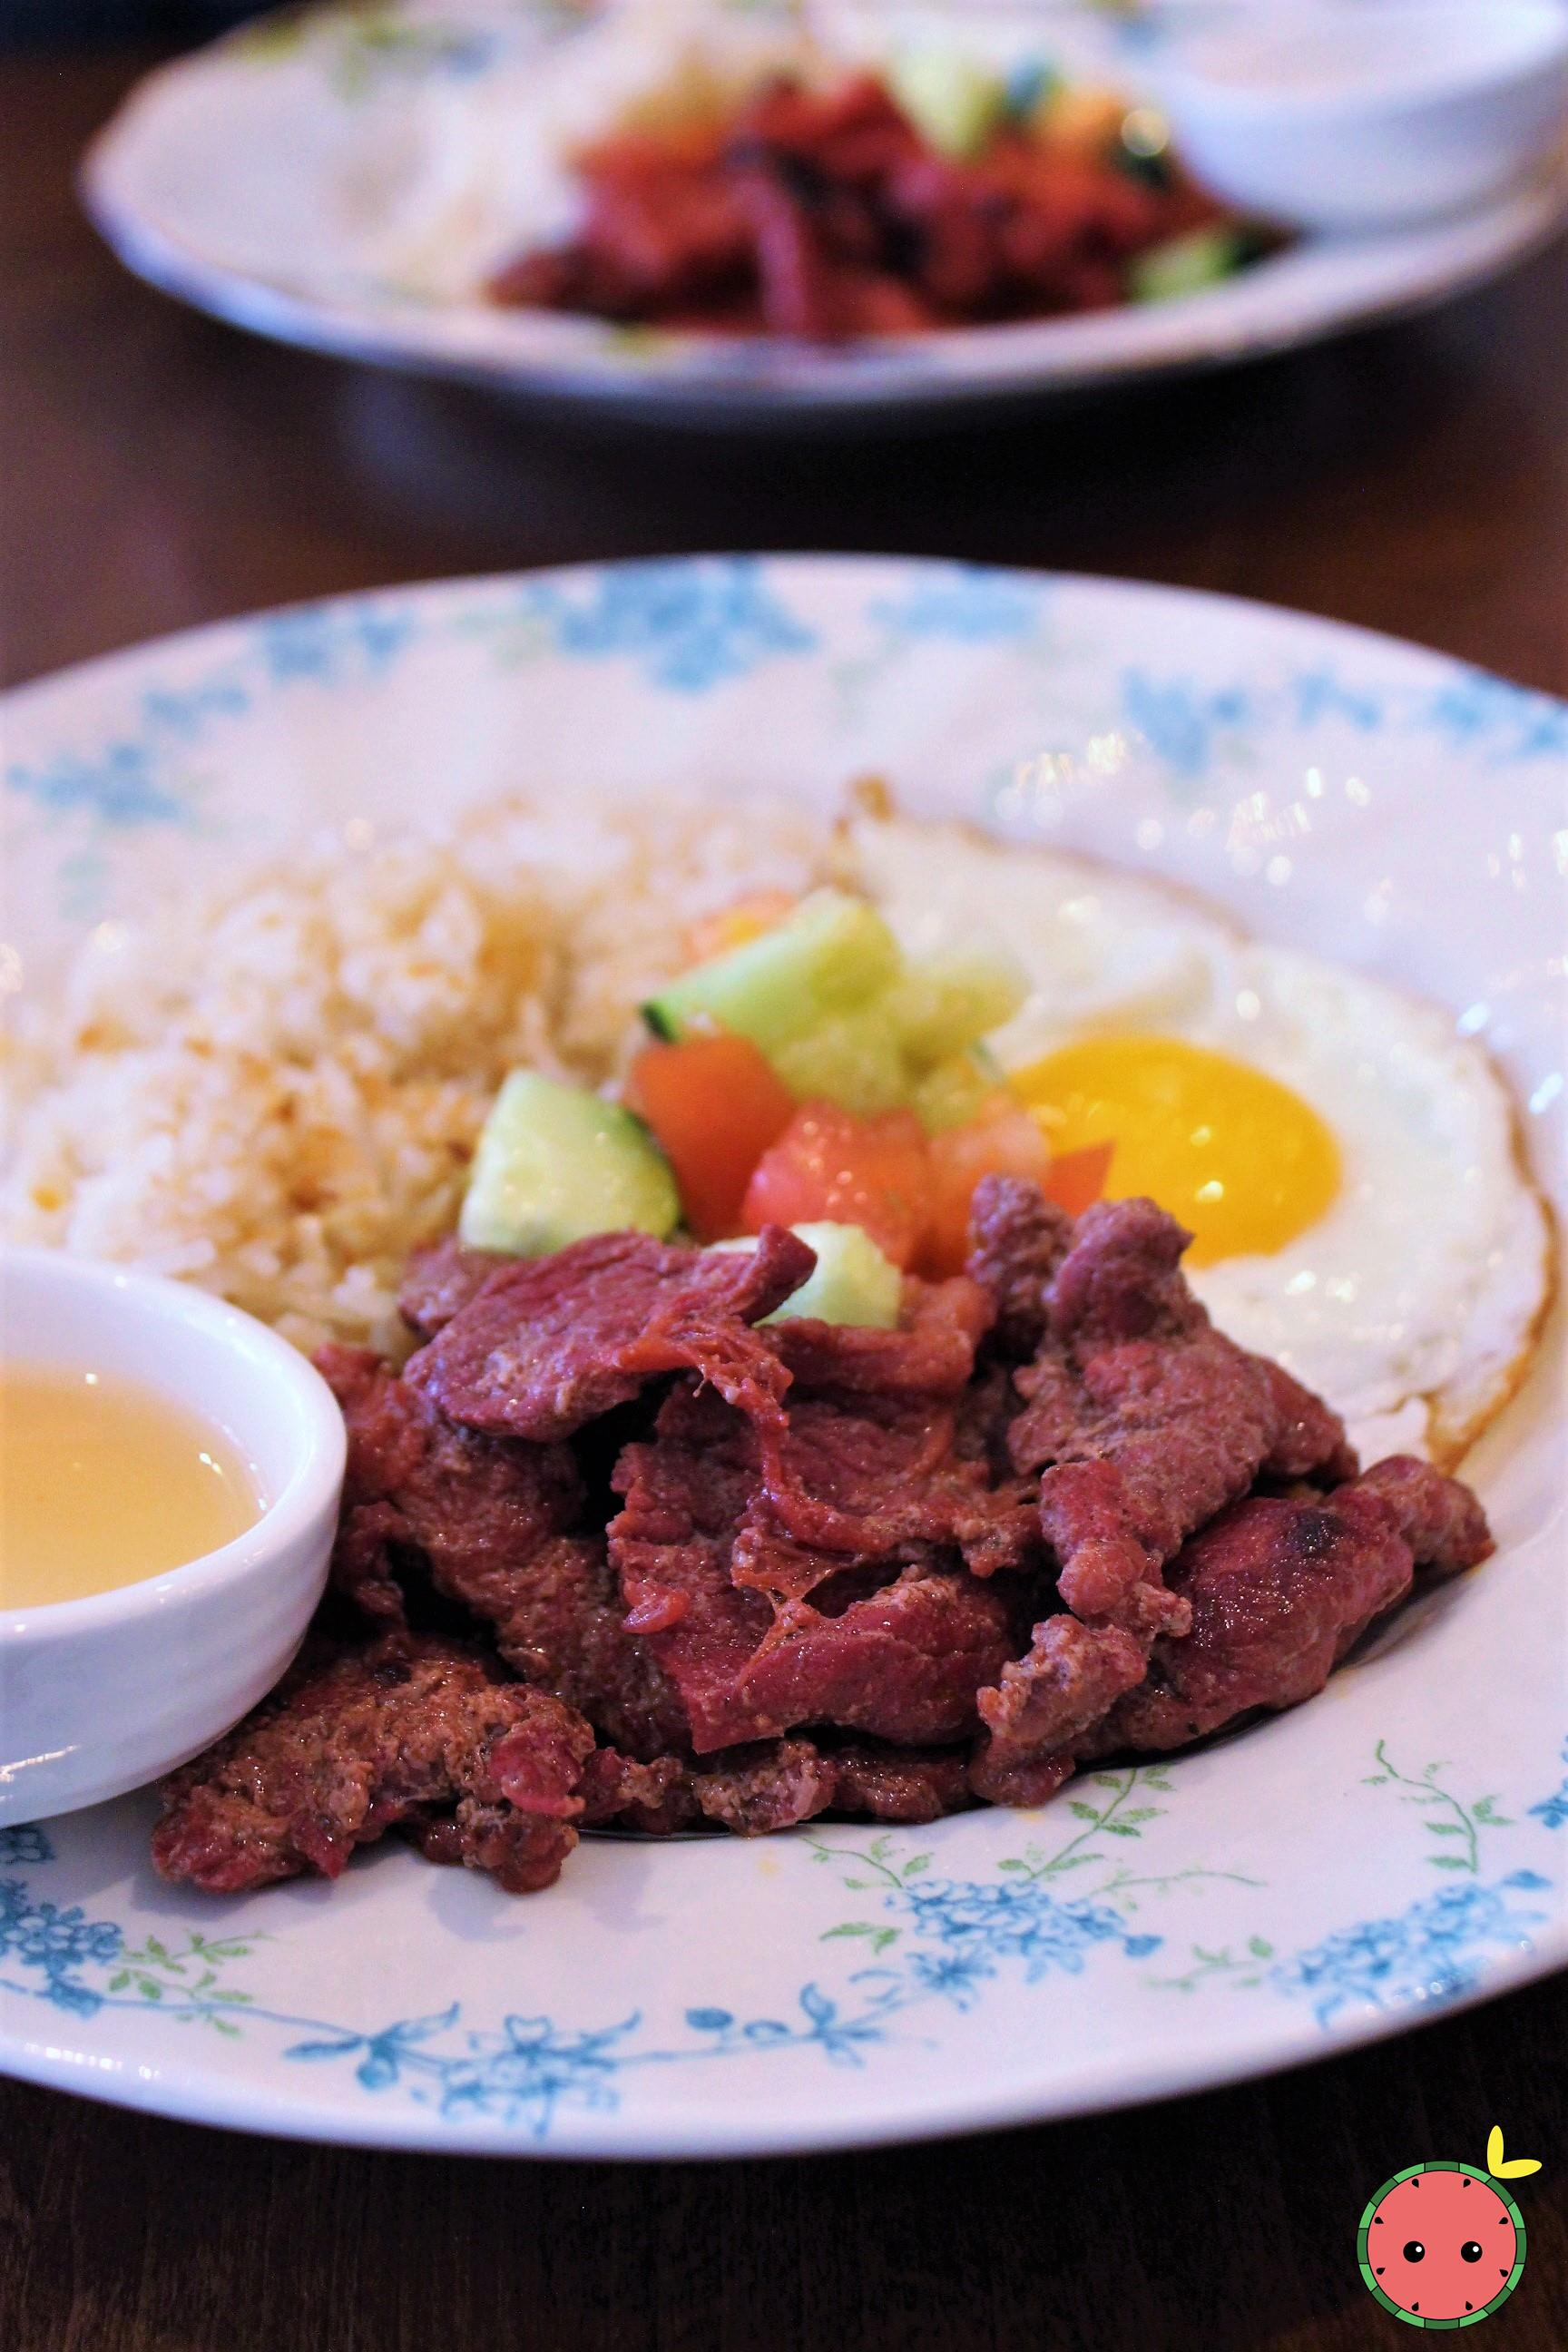 Tapsilog - Cured Marinaated Beef (Tapa)